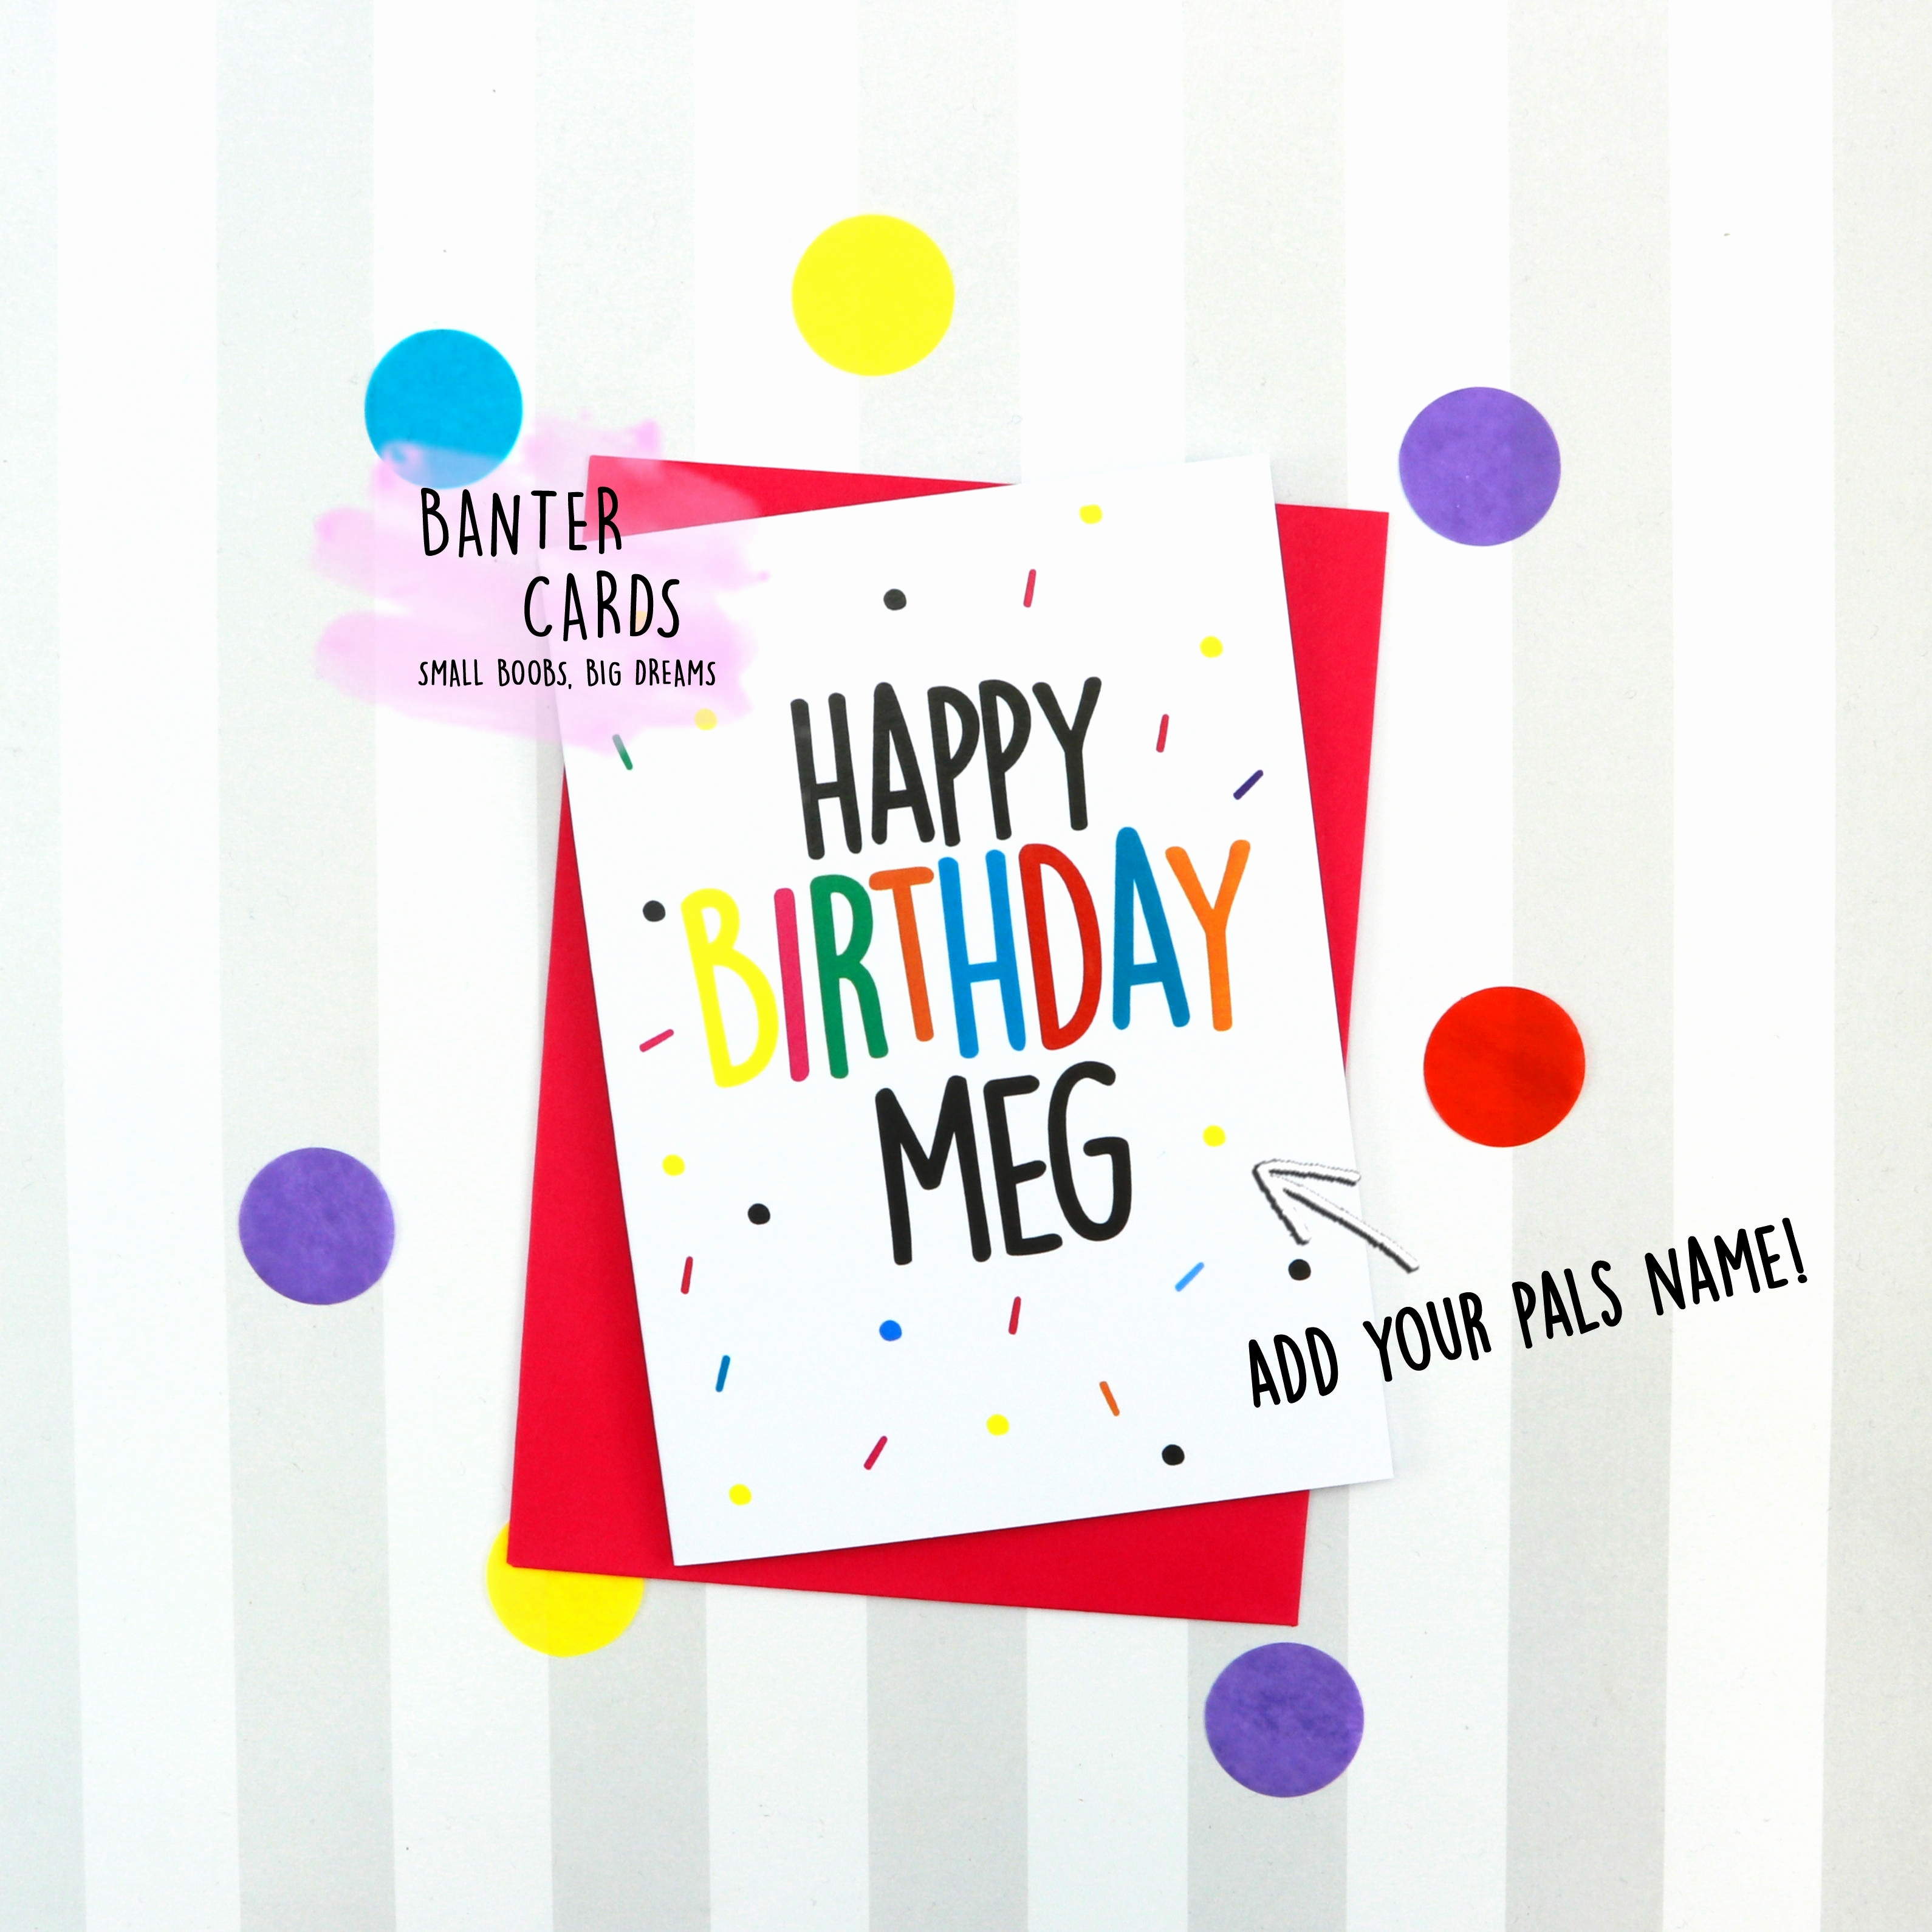 birthday card maker with name ; online-happy-birthday-card-with-name-edit-unique-98-awesome-happy-birthday-name-card-birthday-ideas-of-online-happy-birthday-card-with-name-edit